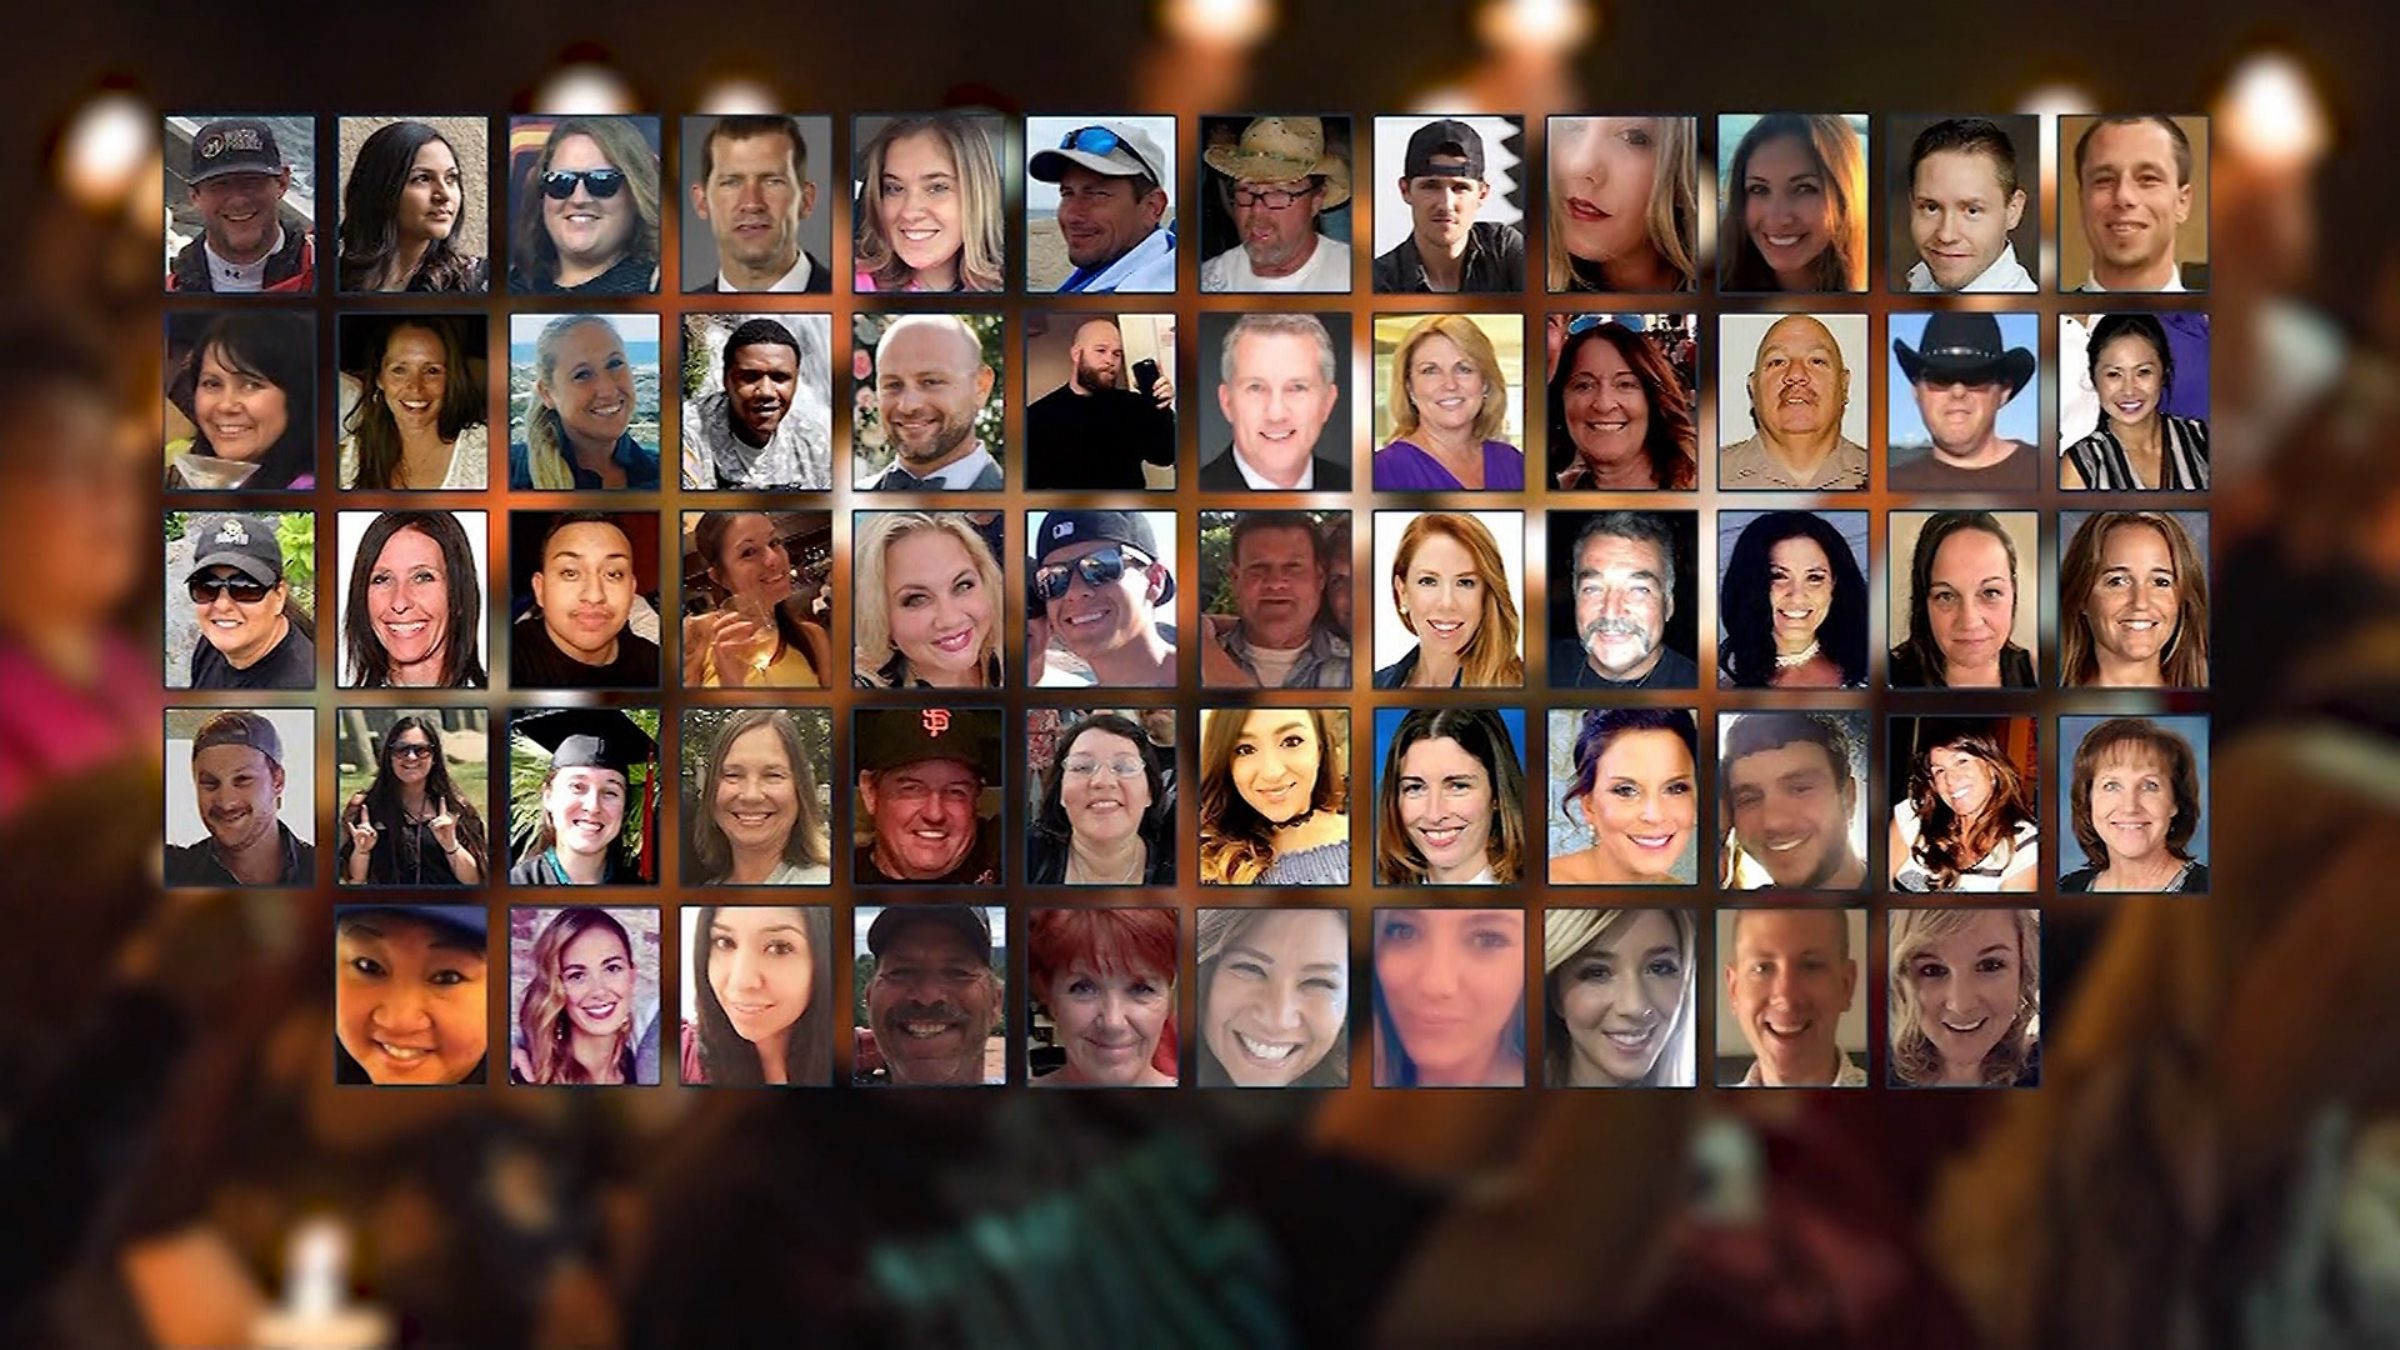 Las Vegas shooting fund victims